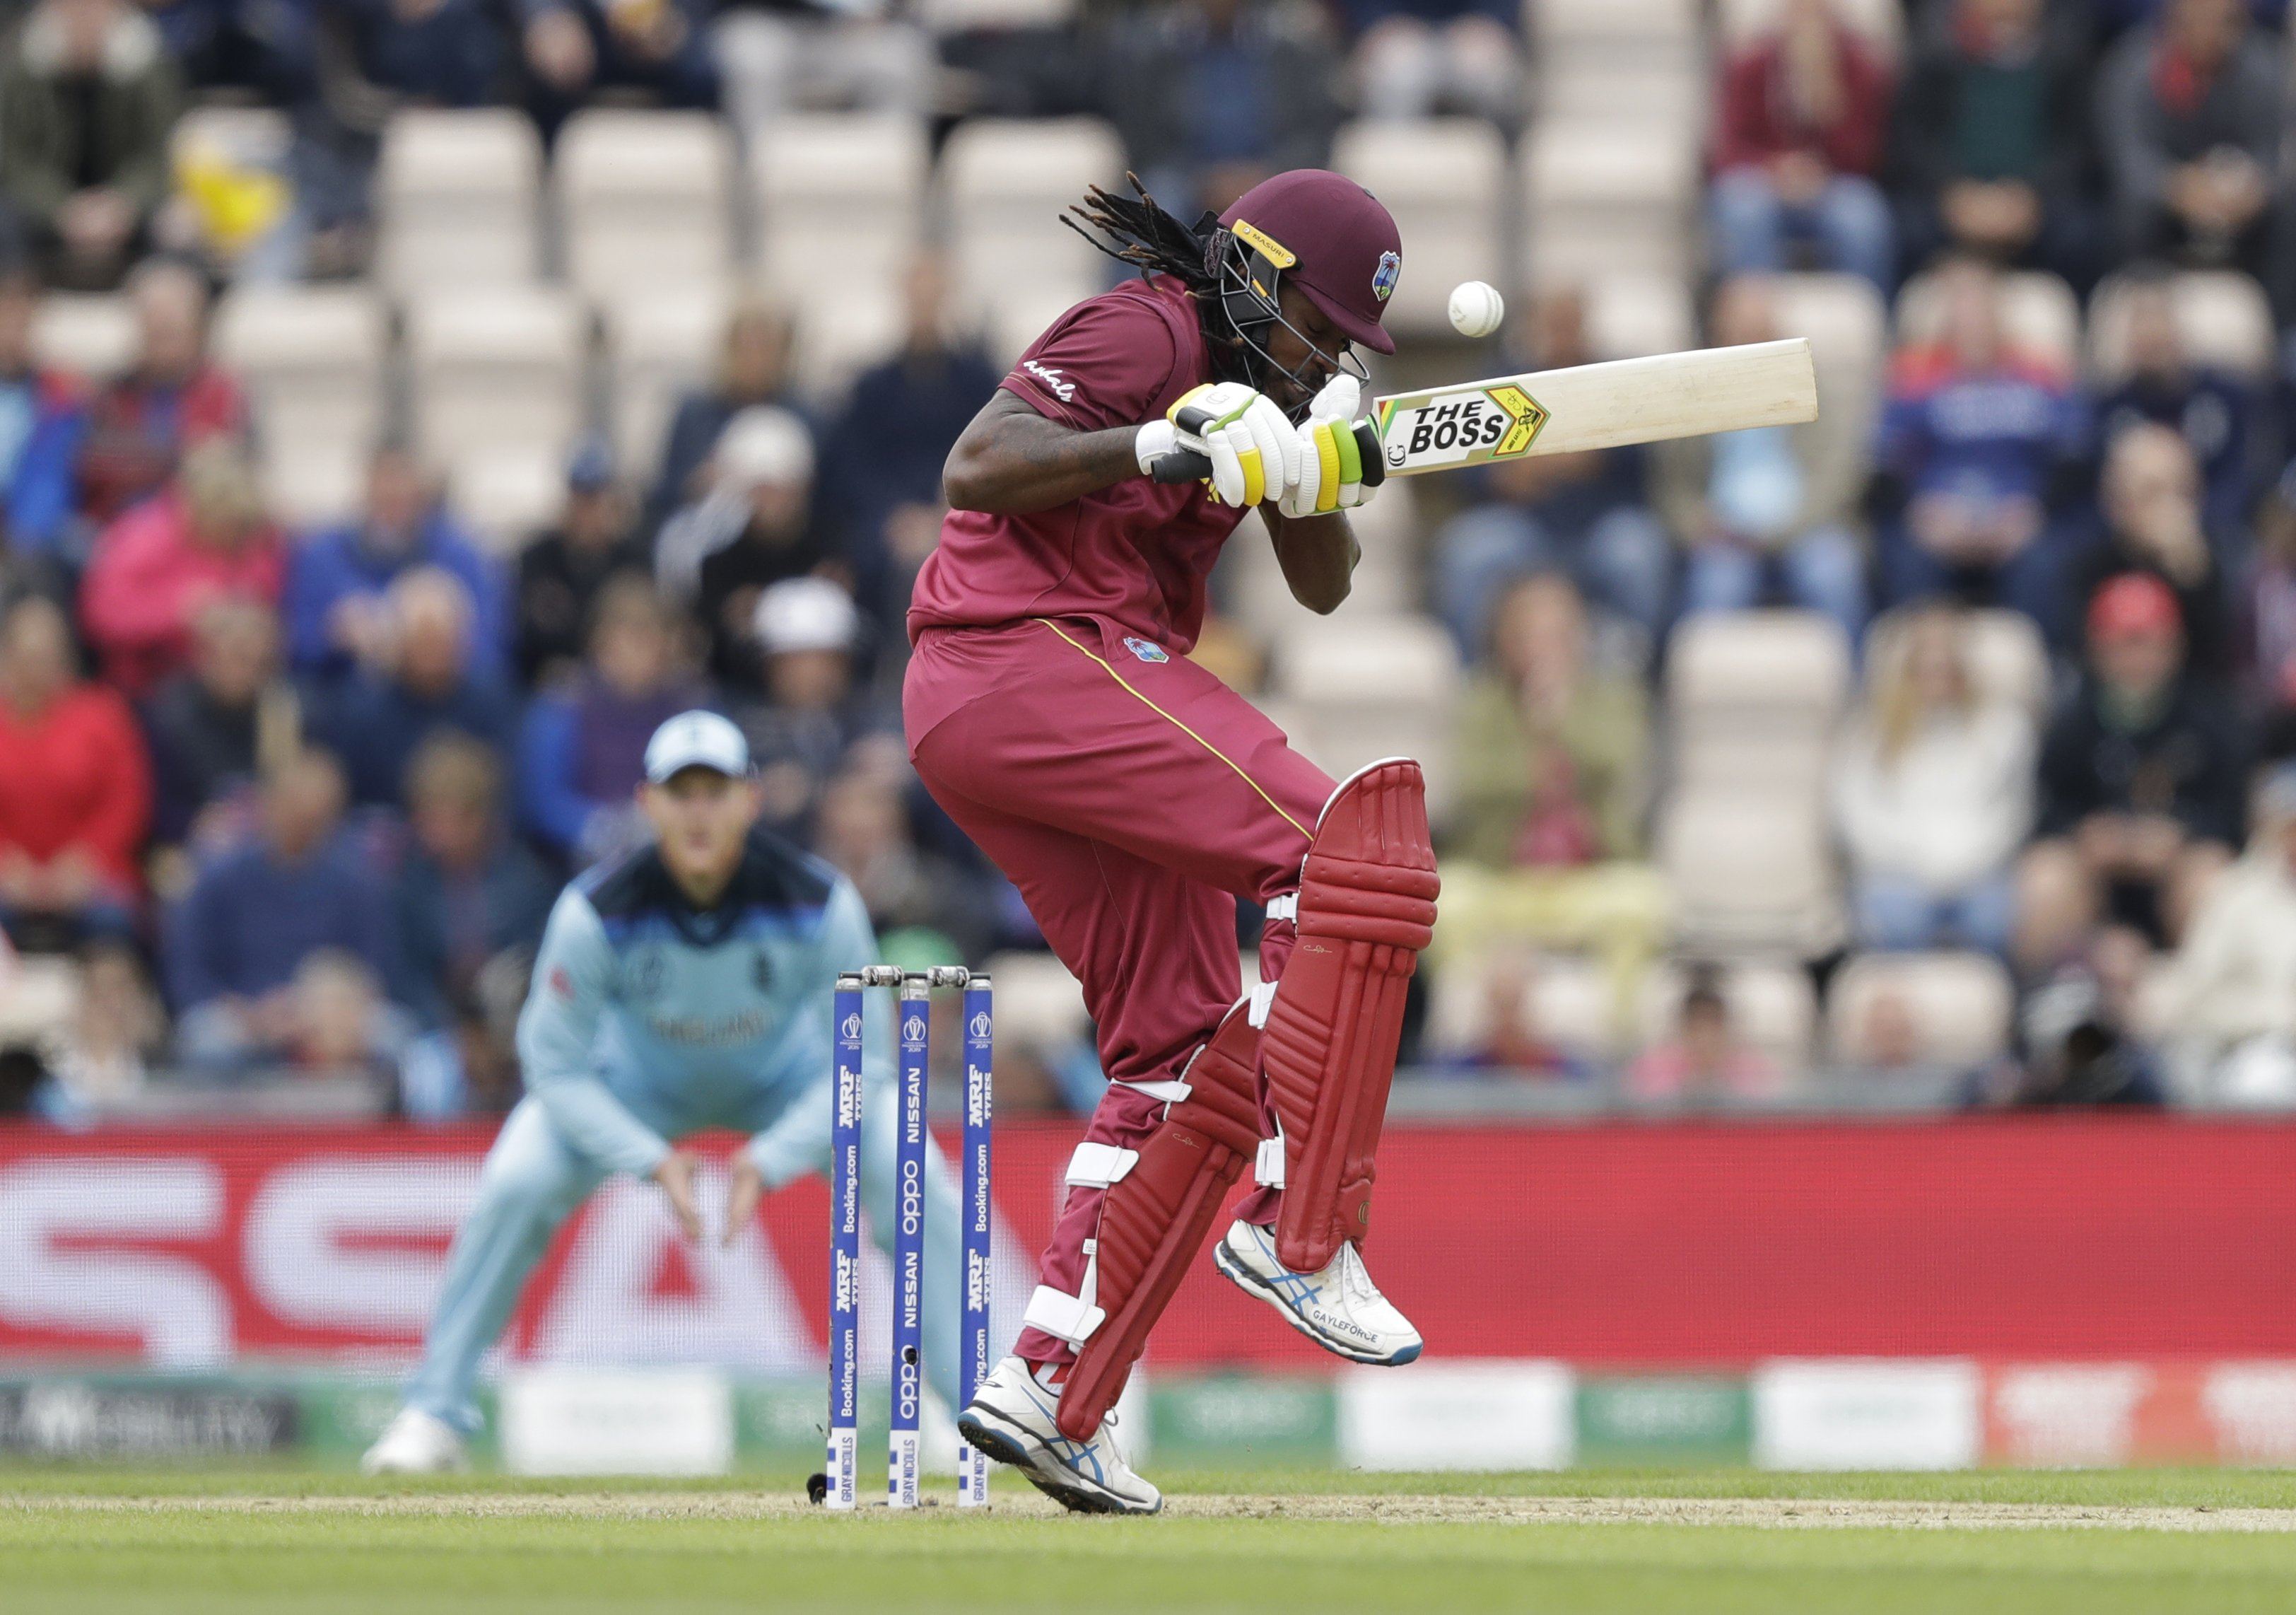 England (Eng) vs West Indies (WI), LIVE Cricket Score World Cup 2019